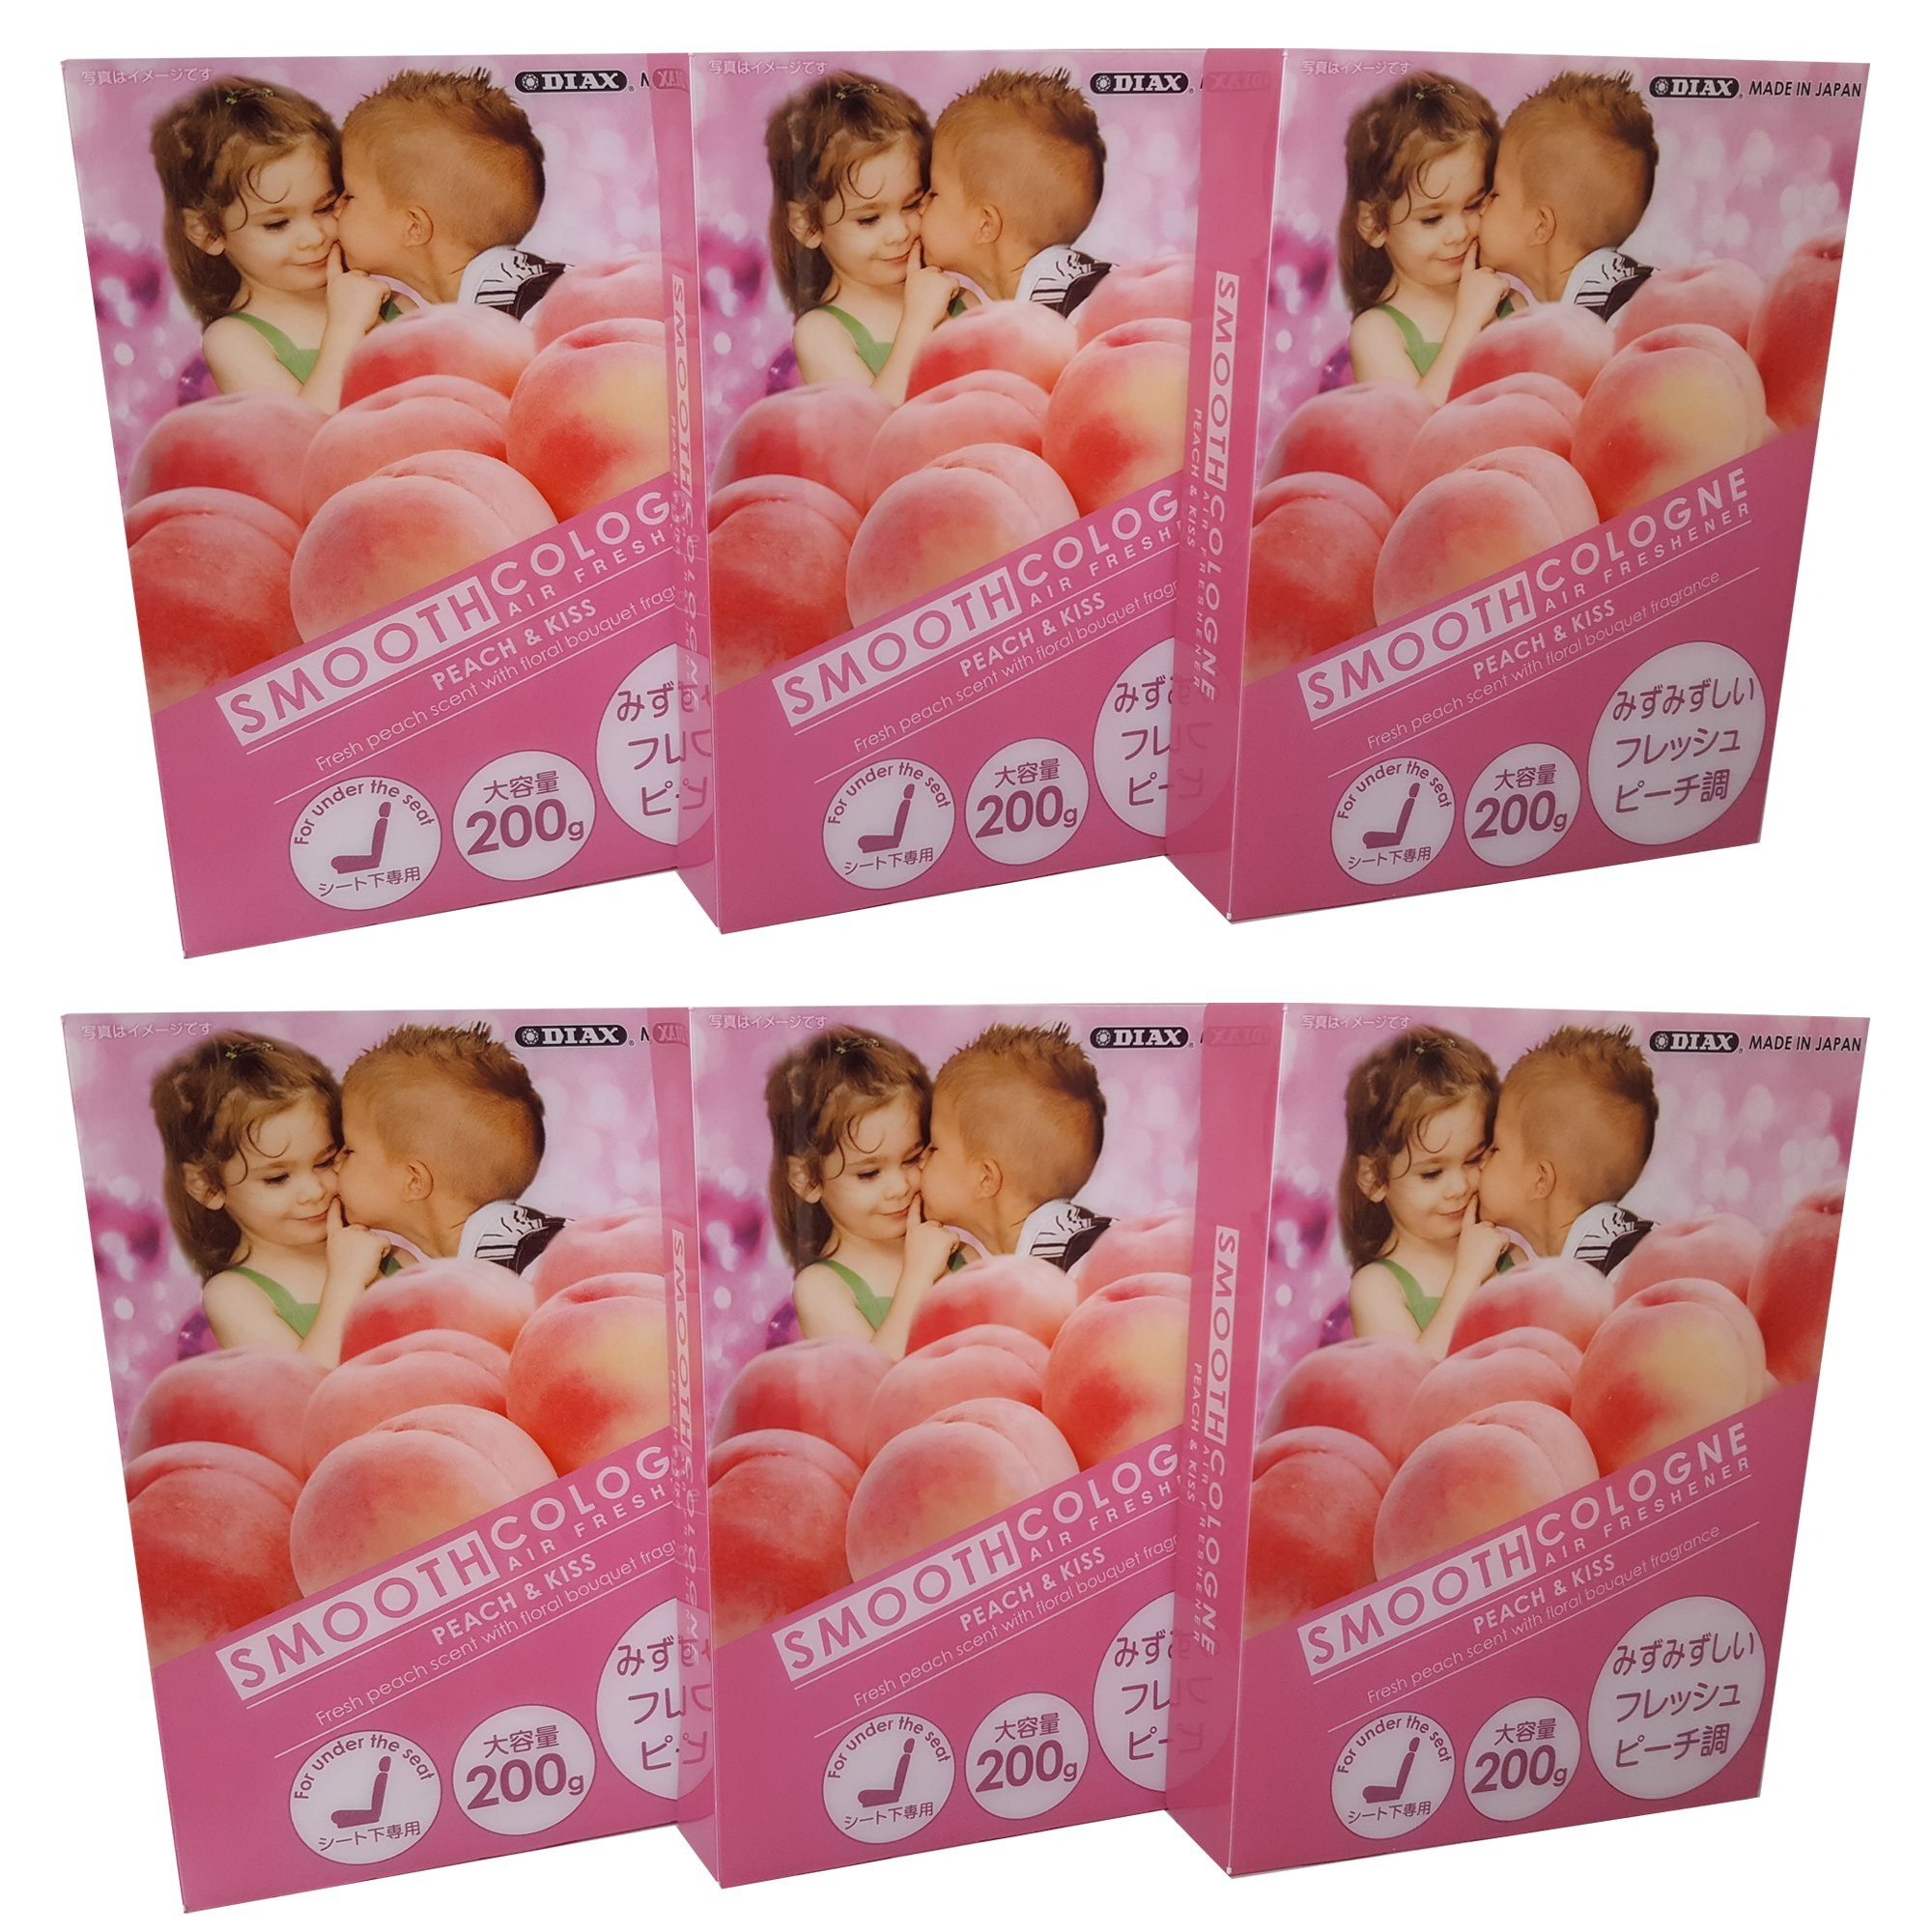 Smooth Cologne 6-pack Peach & Kiss (Fresh Peach Scent with Floral Bouquet Fragrance) Luxury Air Freshener JDM Genuine Diax Japan for Home/office/ Car/Auto/ Rv